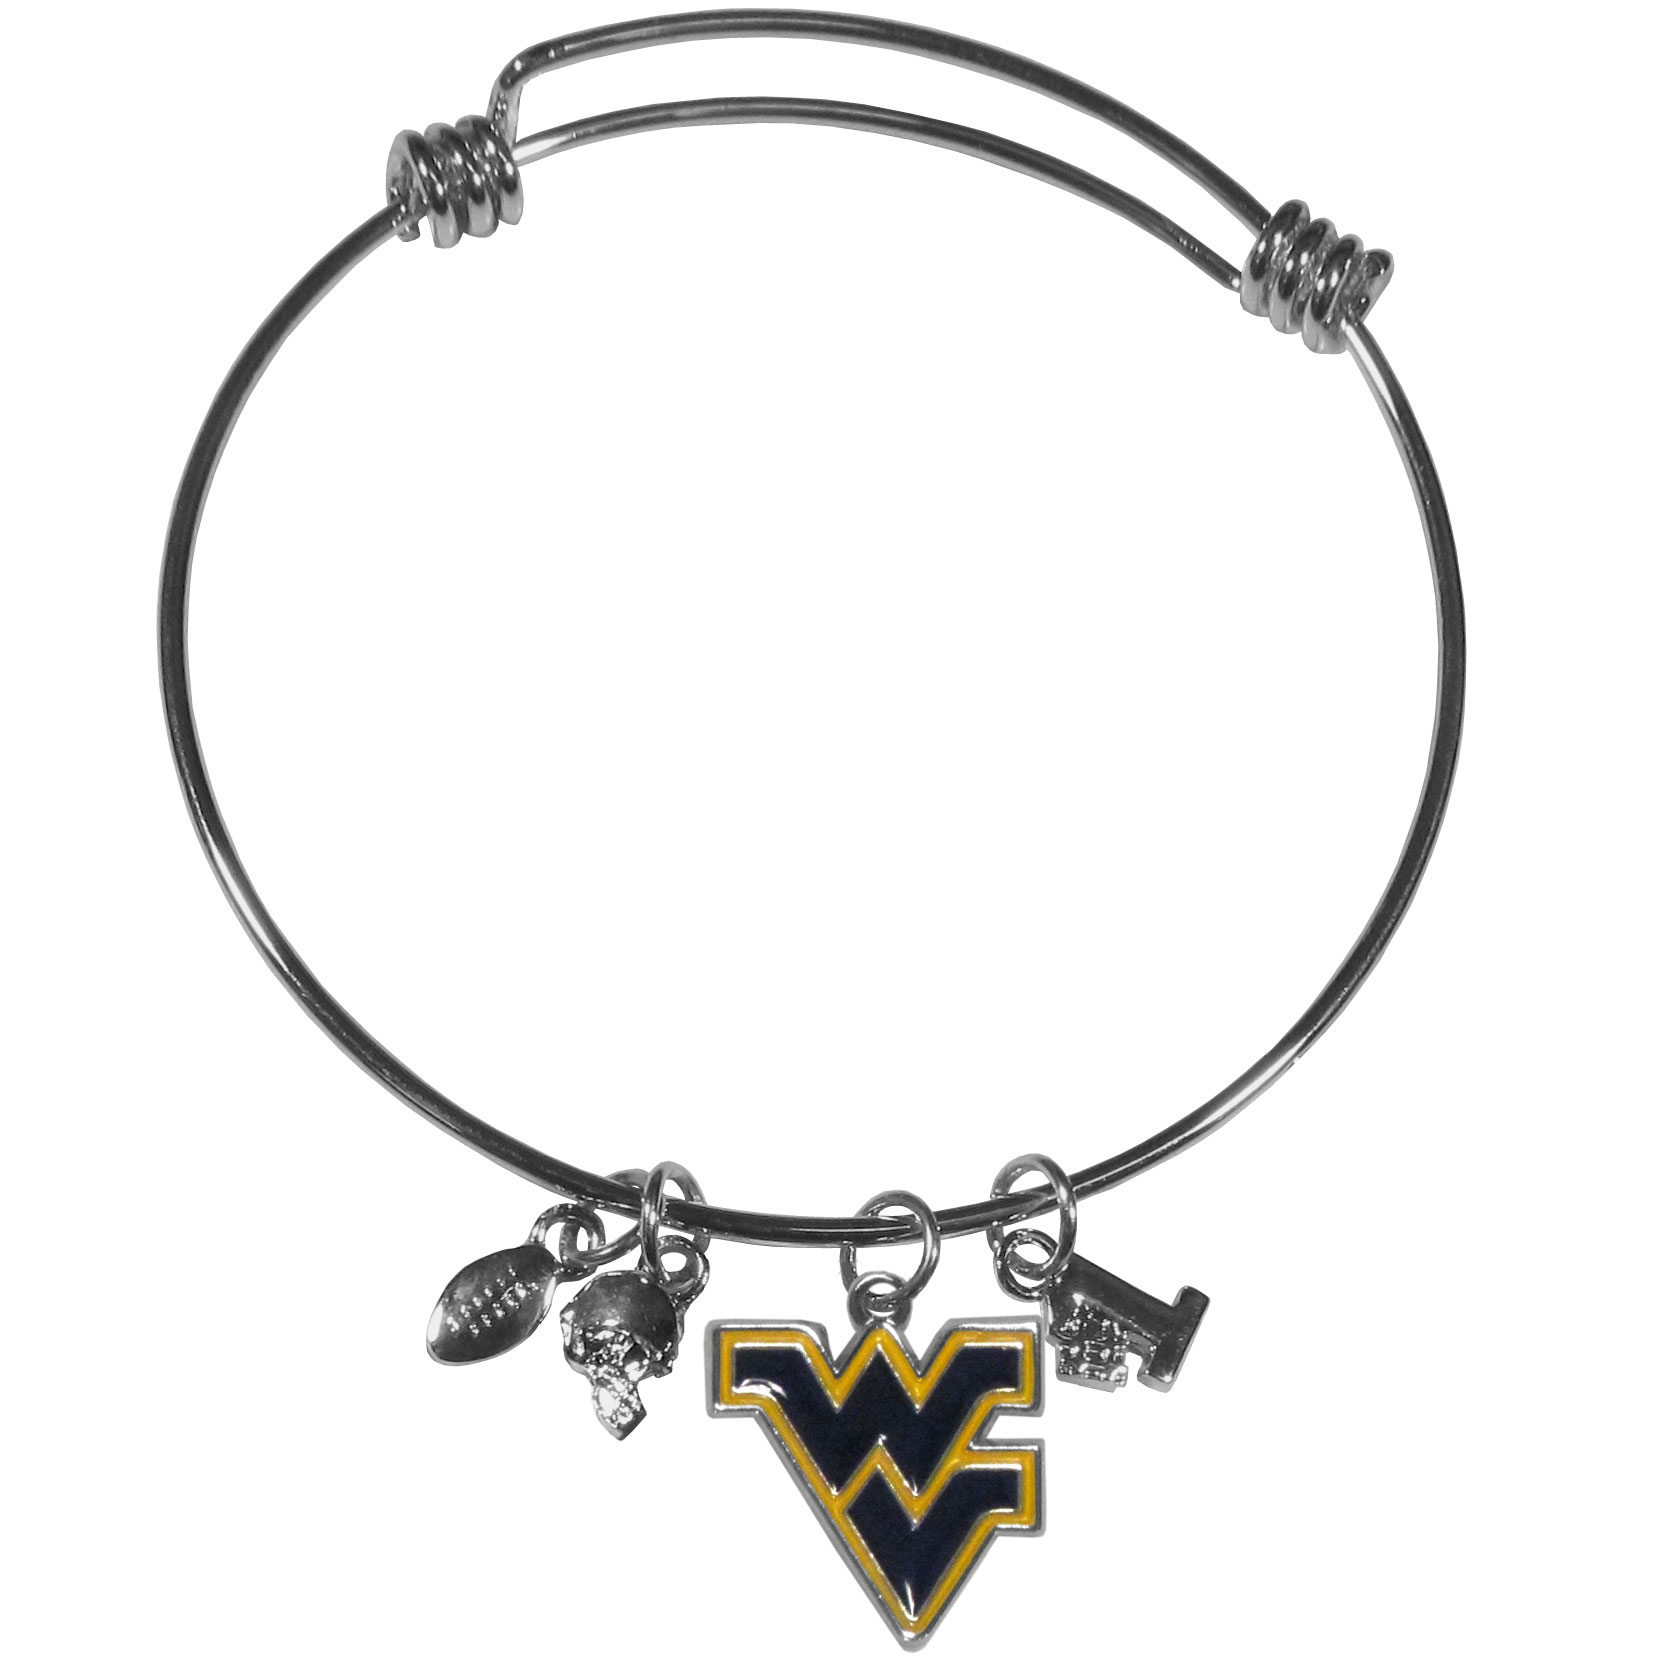 W. Virginia Mountaineers Charm Bangle Bracelet - Adjustable wire bracelets are all the rage and this W. Virginia Mountaineers bracelet matches the popular trend with your beloved team. The bracelet features 4 charms in total, each feature exceptional detail and the team charm has enameled team colors.